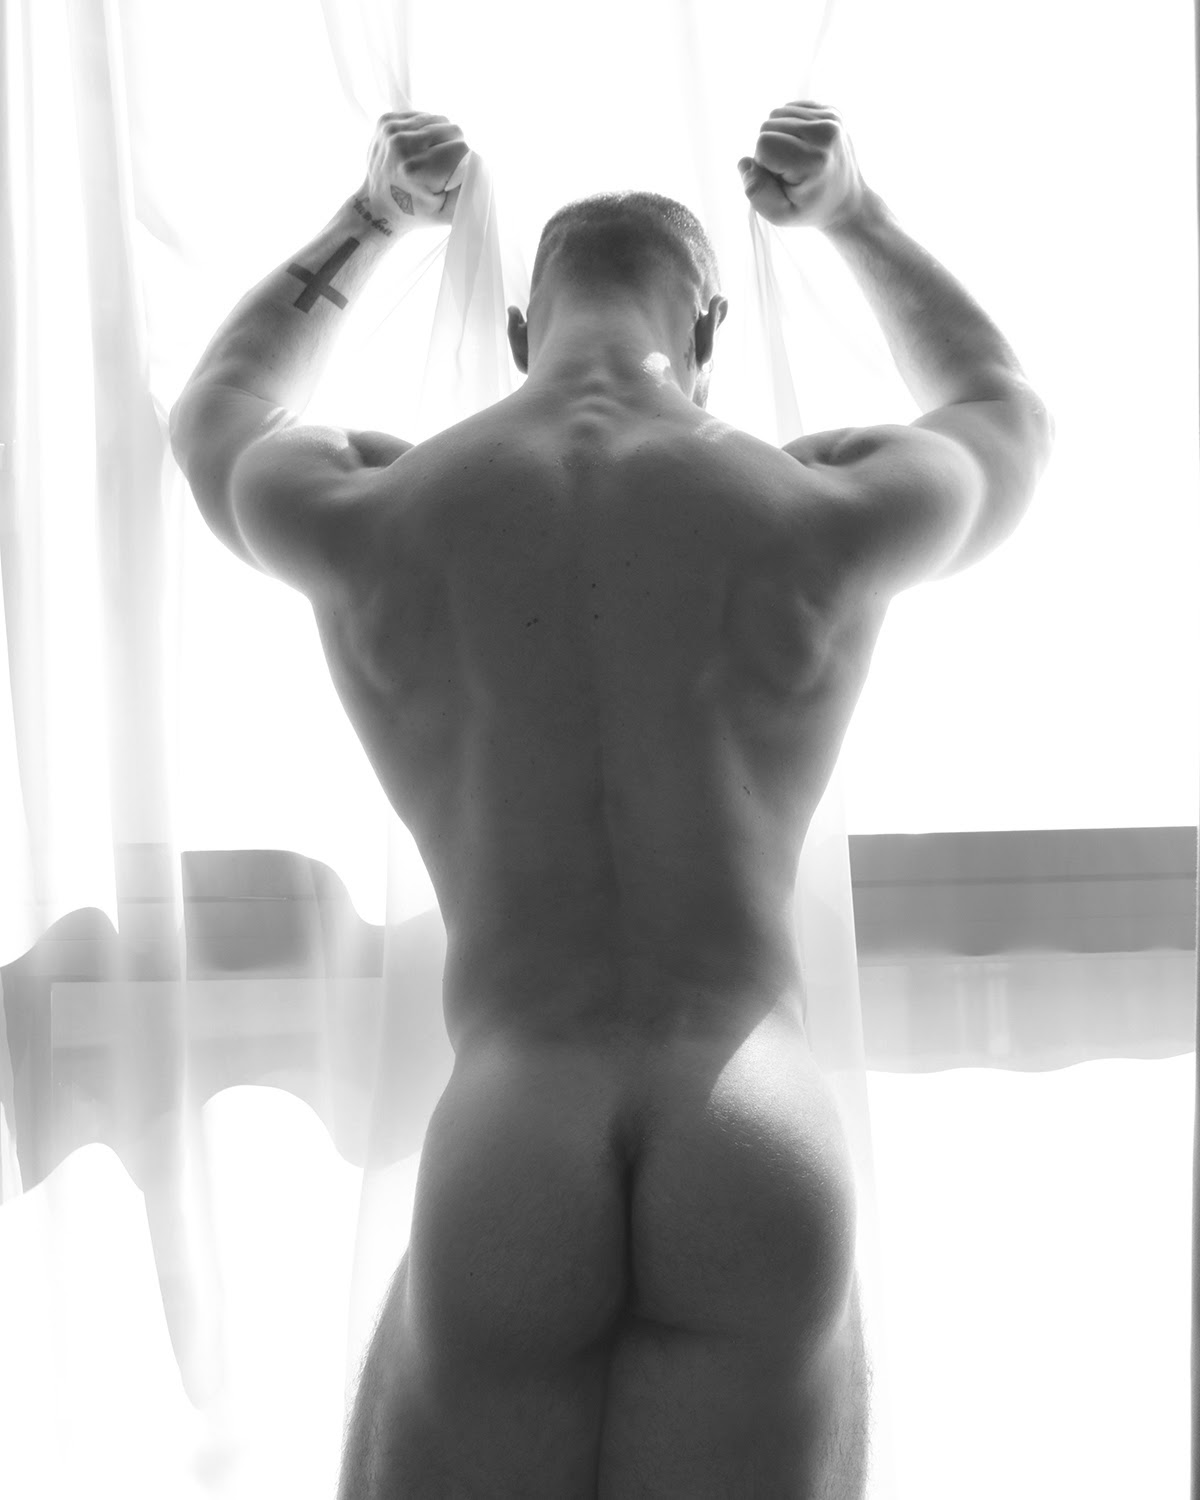 PaolO, by Marco Ovando ft Paolo Bellucci (NSFW)